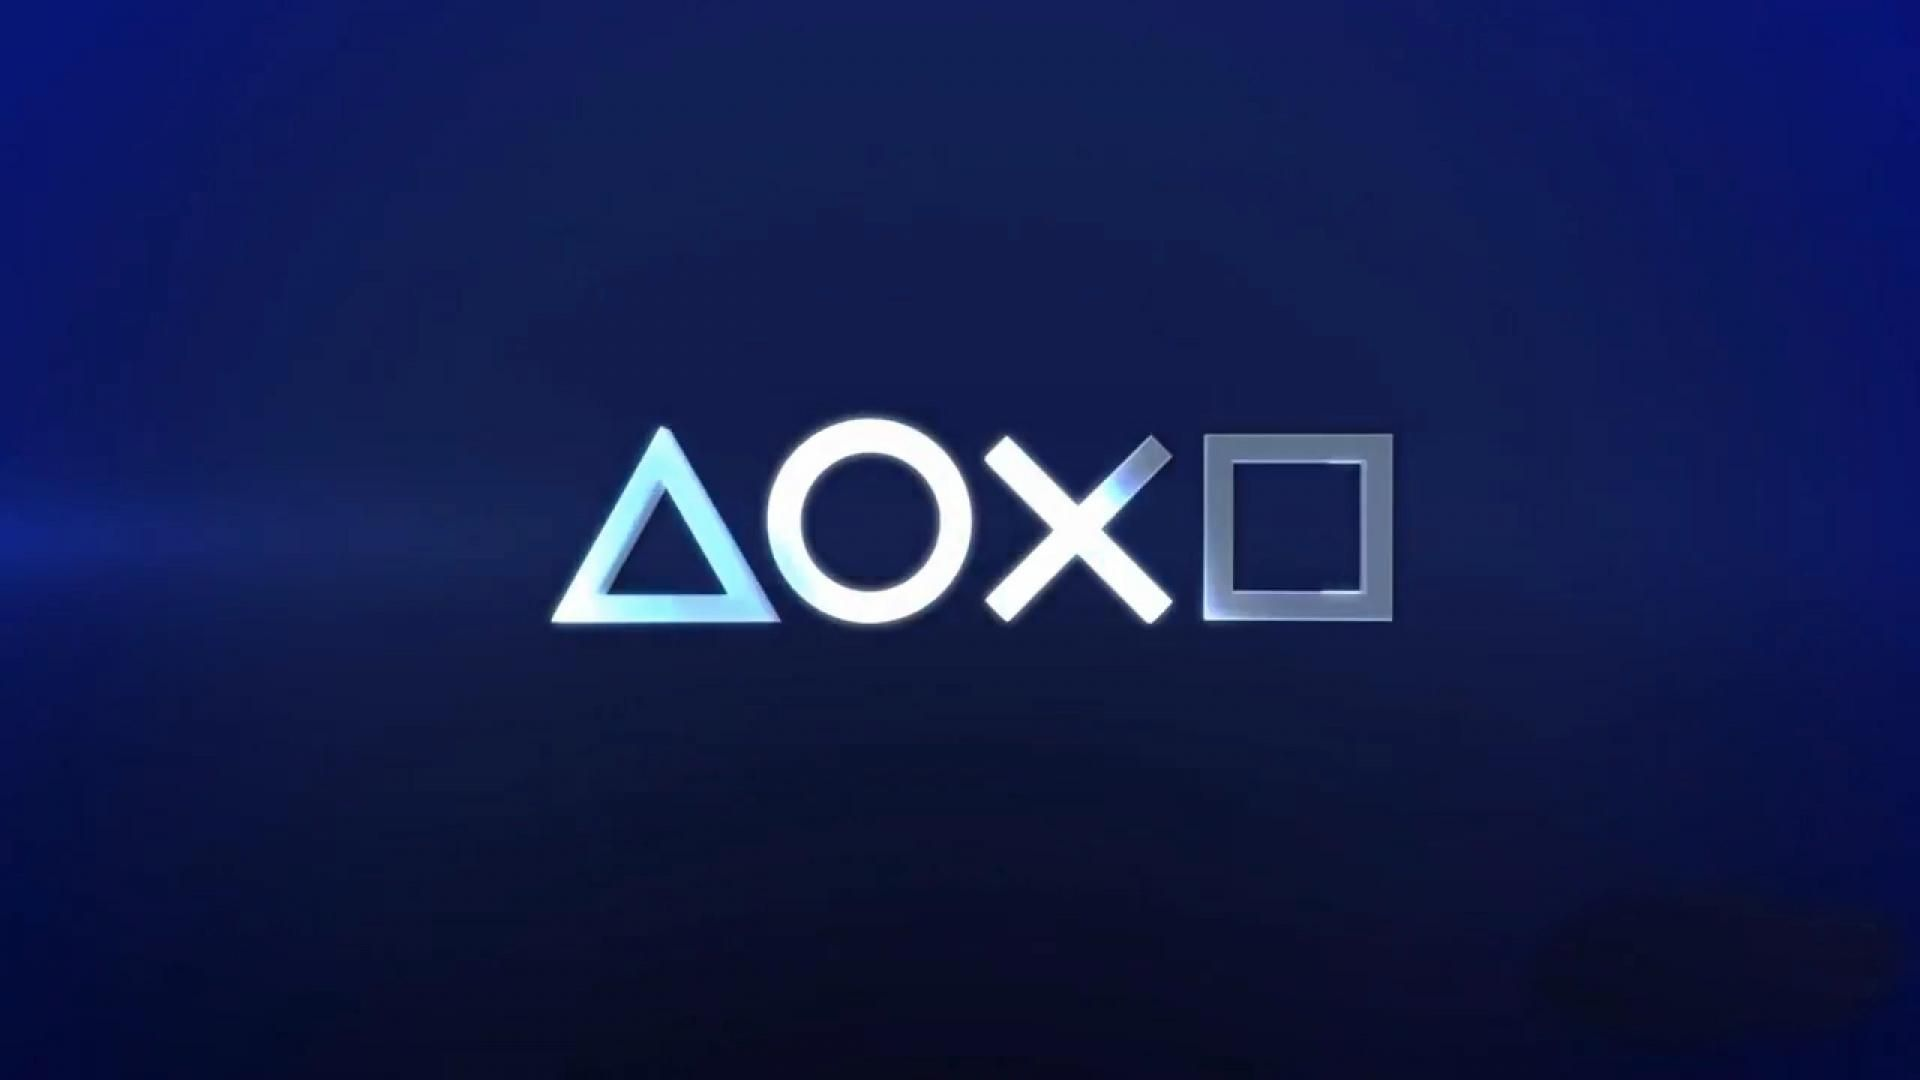 PS4 Wallpapers HD 1080p Playstation consoles Playstation Xbox 1920x1080